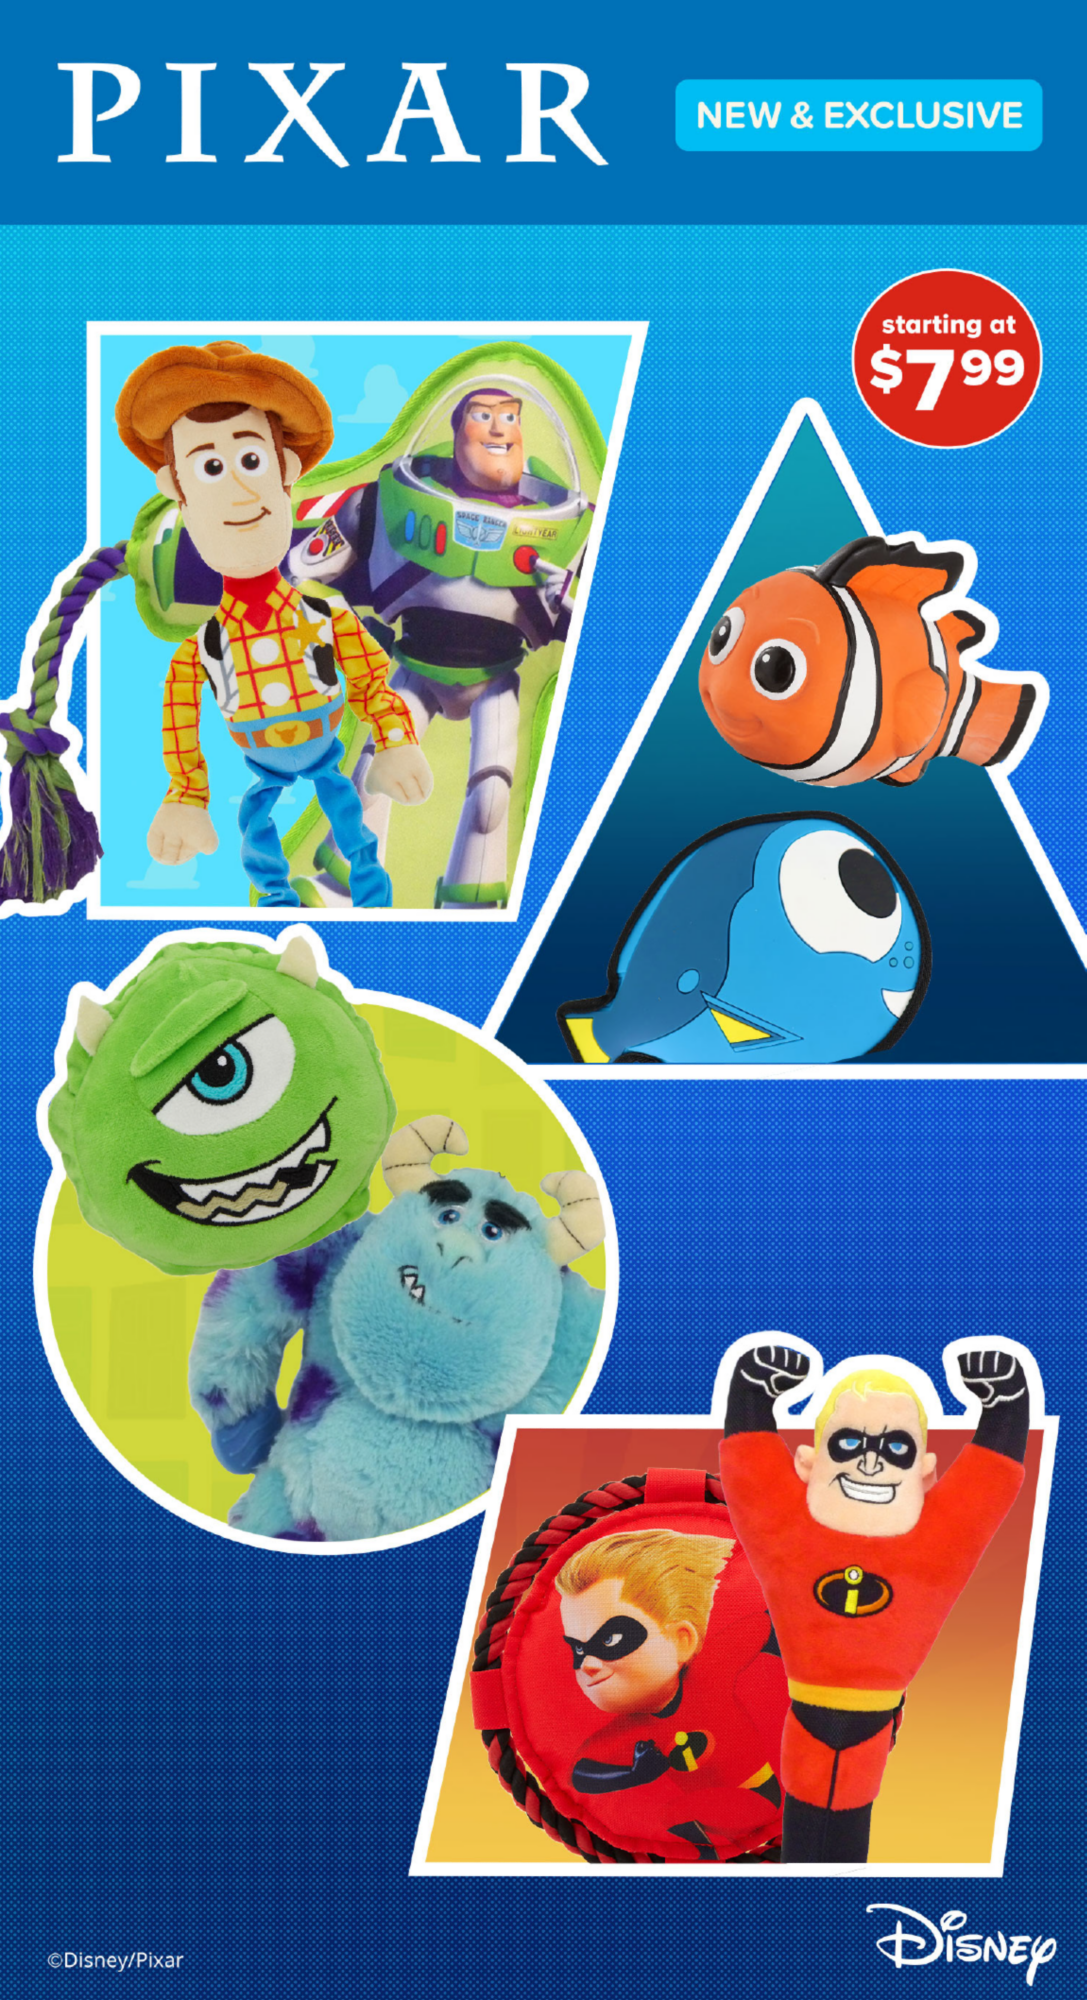 Pixar NEW & EXCLUSIVE starting at $7.99 Disney